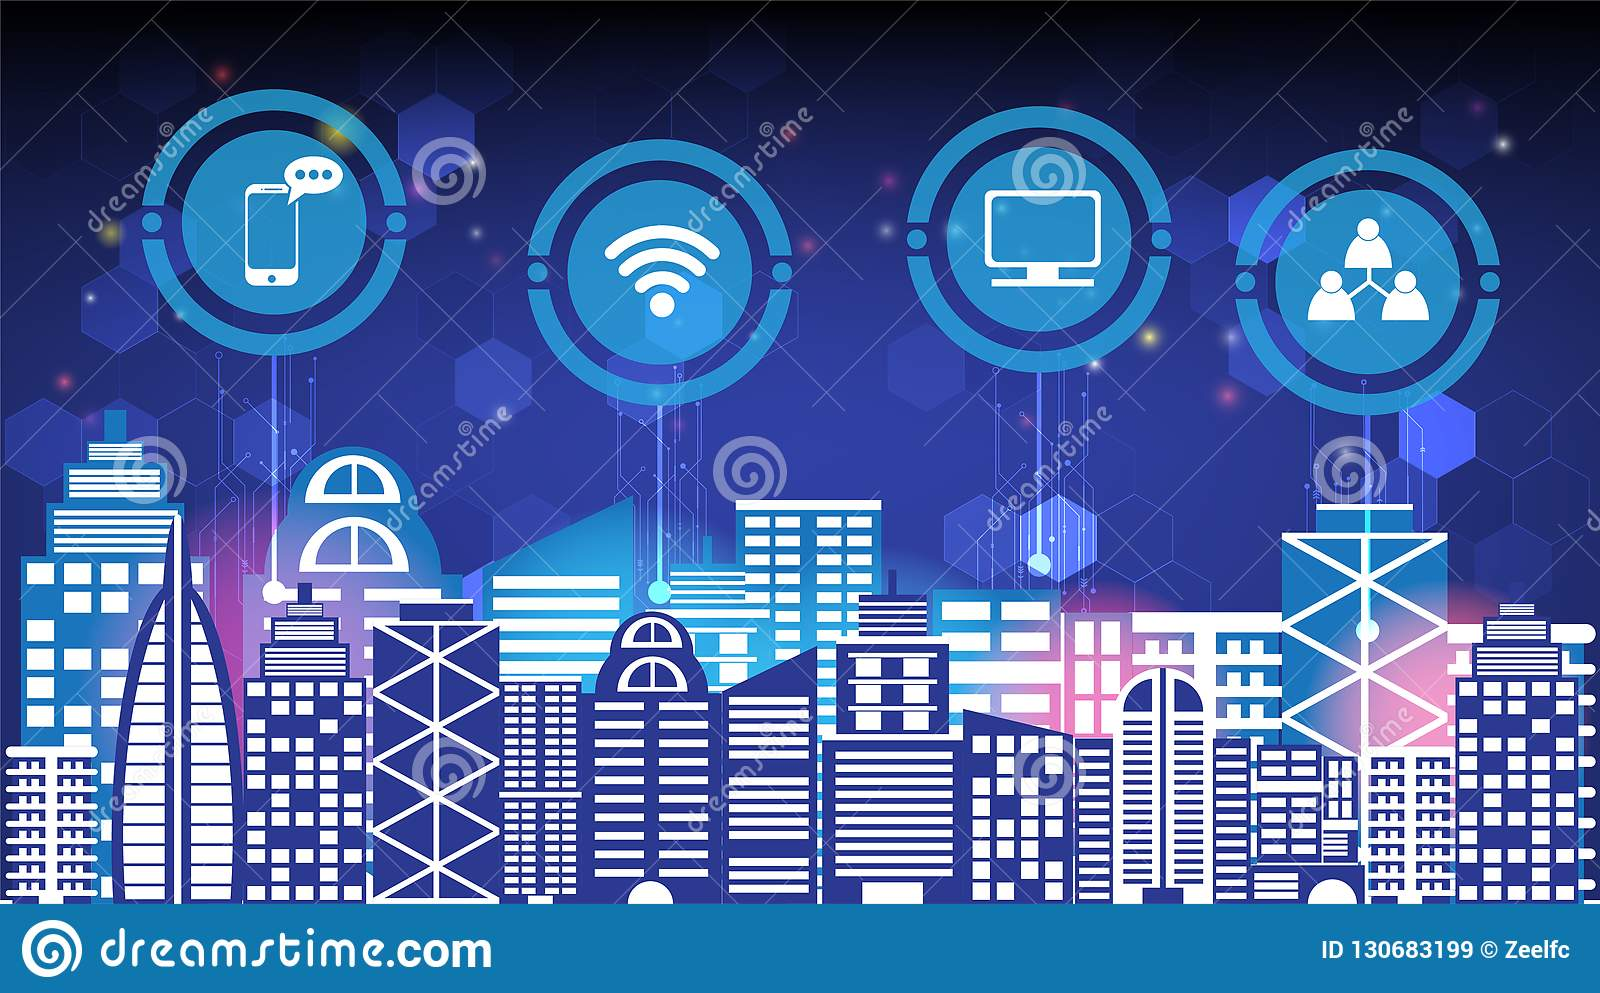 Abstract technology innovation smart city and wireless communication network night city social digital life, internet of things